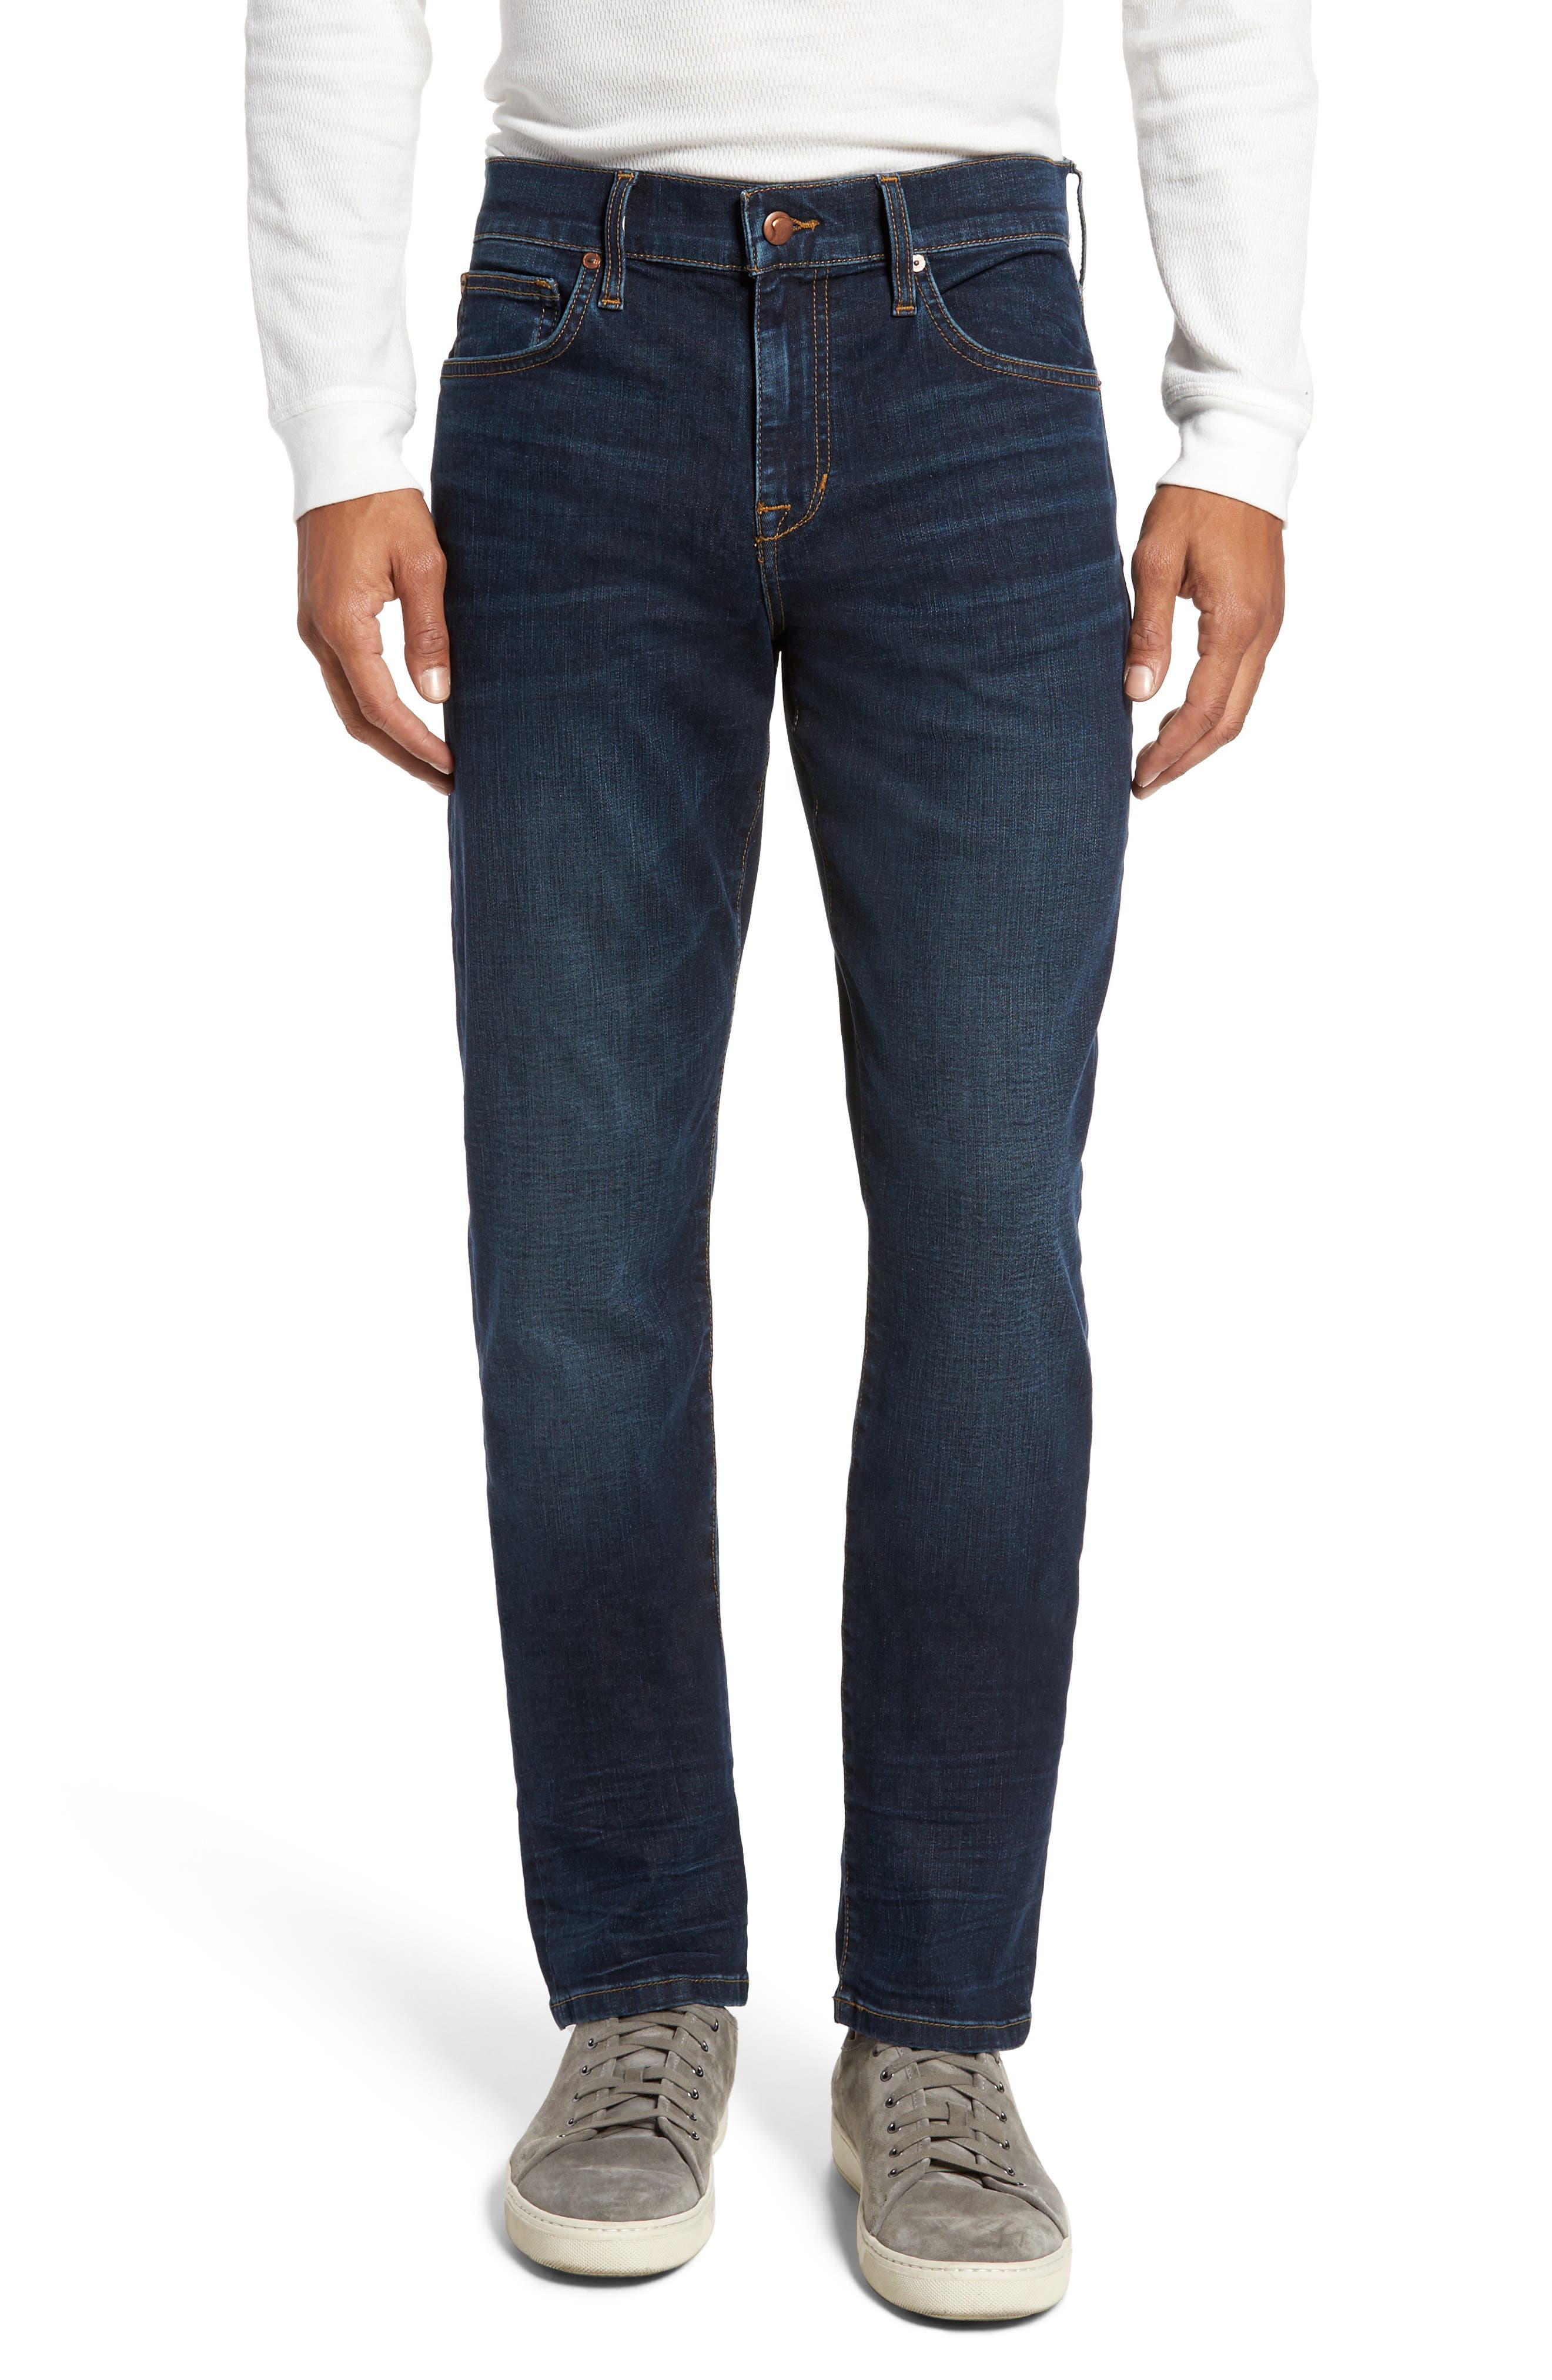 Alternate Image 1 Selected - Joe's Slim Fit Jeans (Bernard)